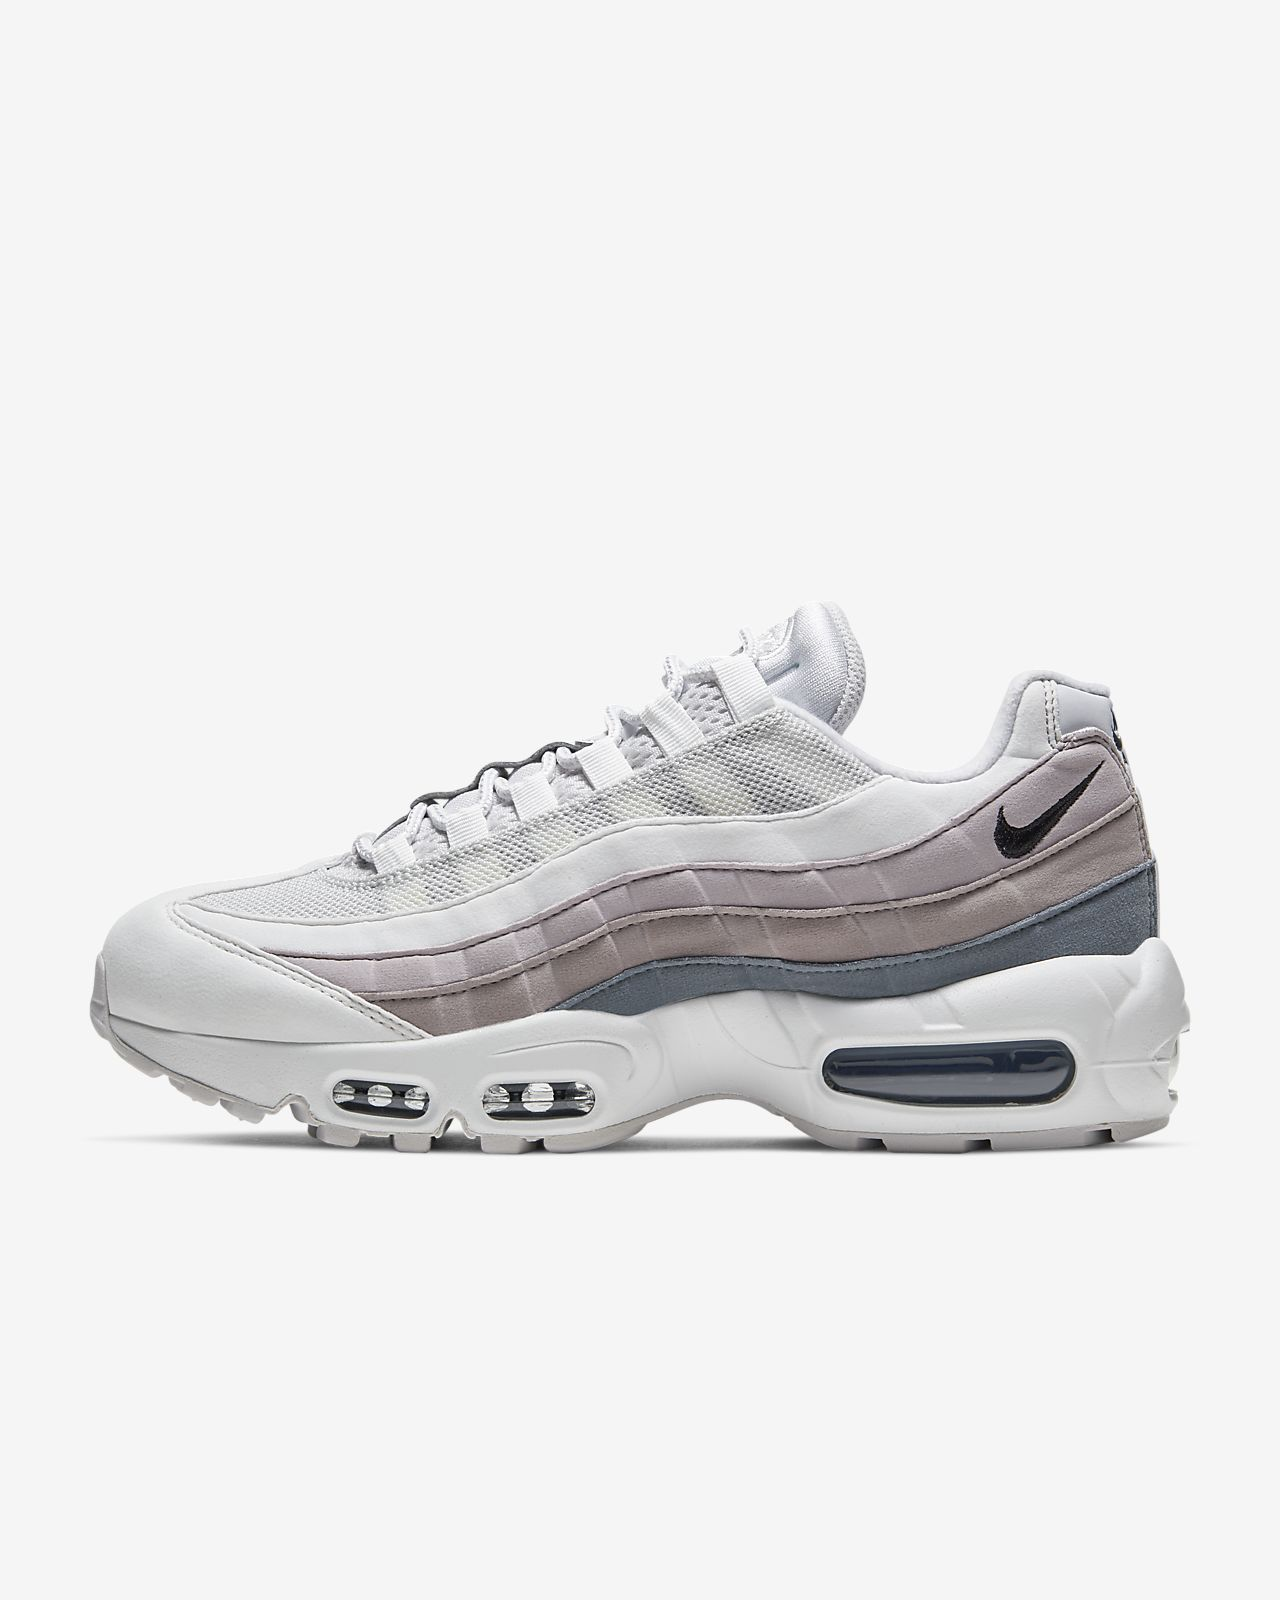 Sneakers Donna Nike w air max '97 Rosa 921733 602 | White Room